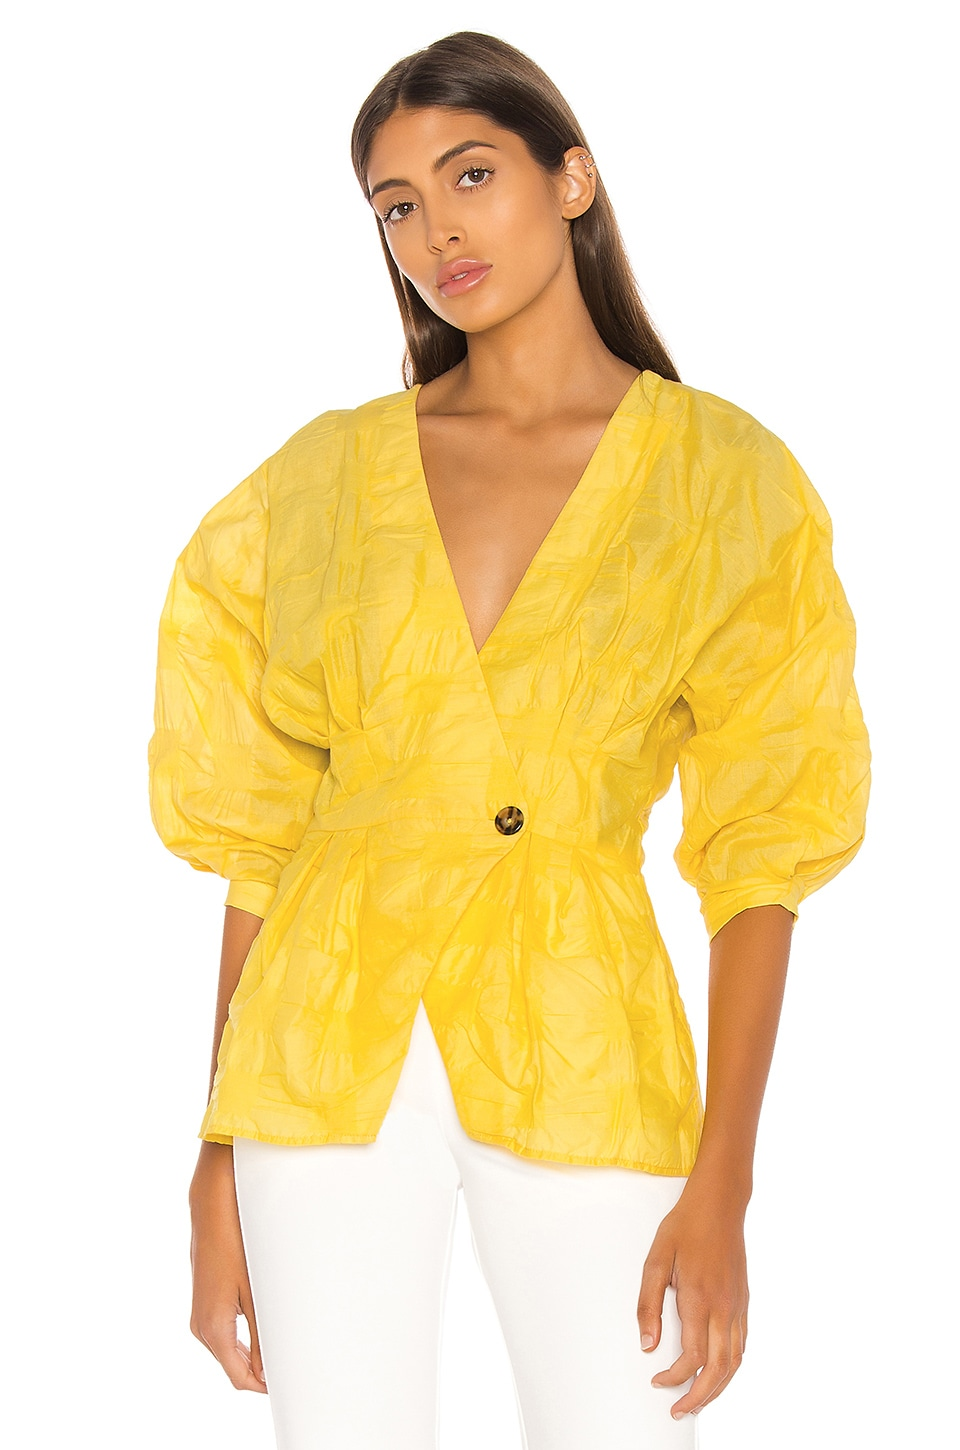 L'Academie The Michela Blouse in Lemon Yellow